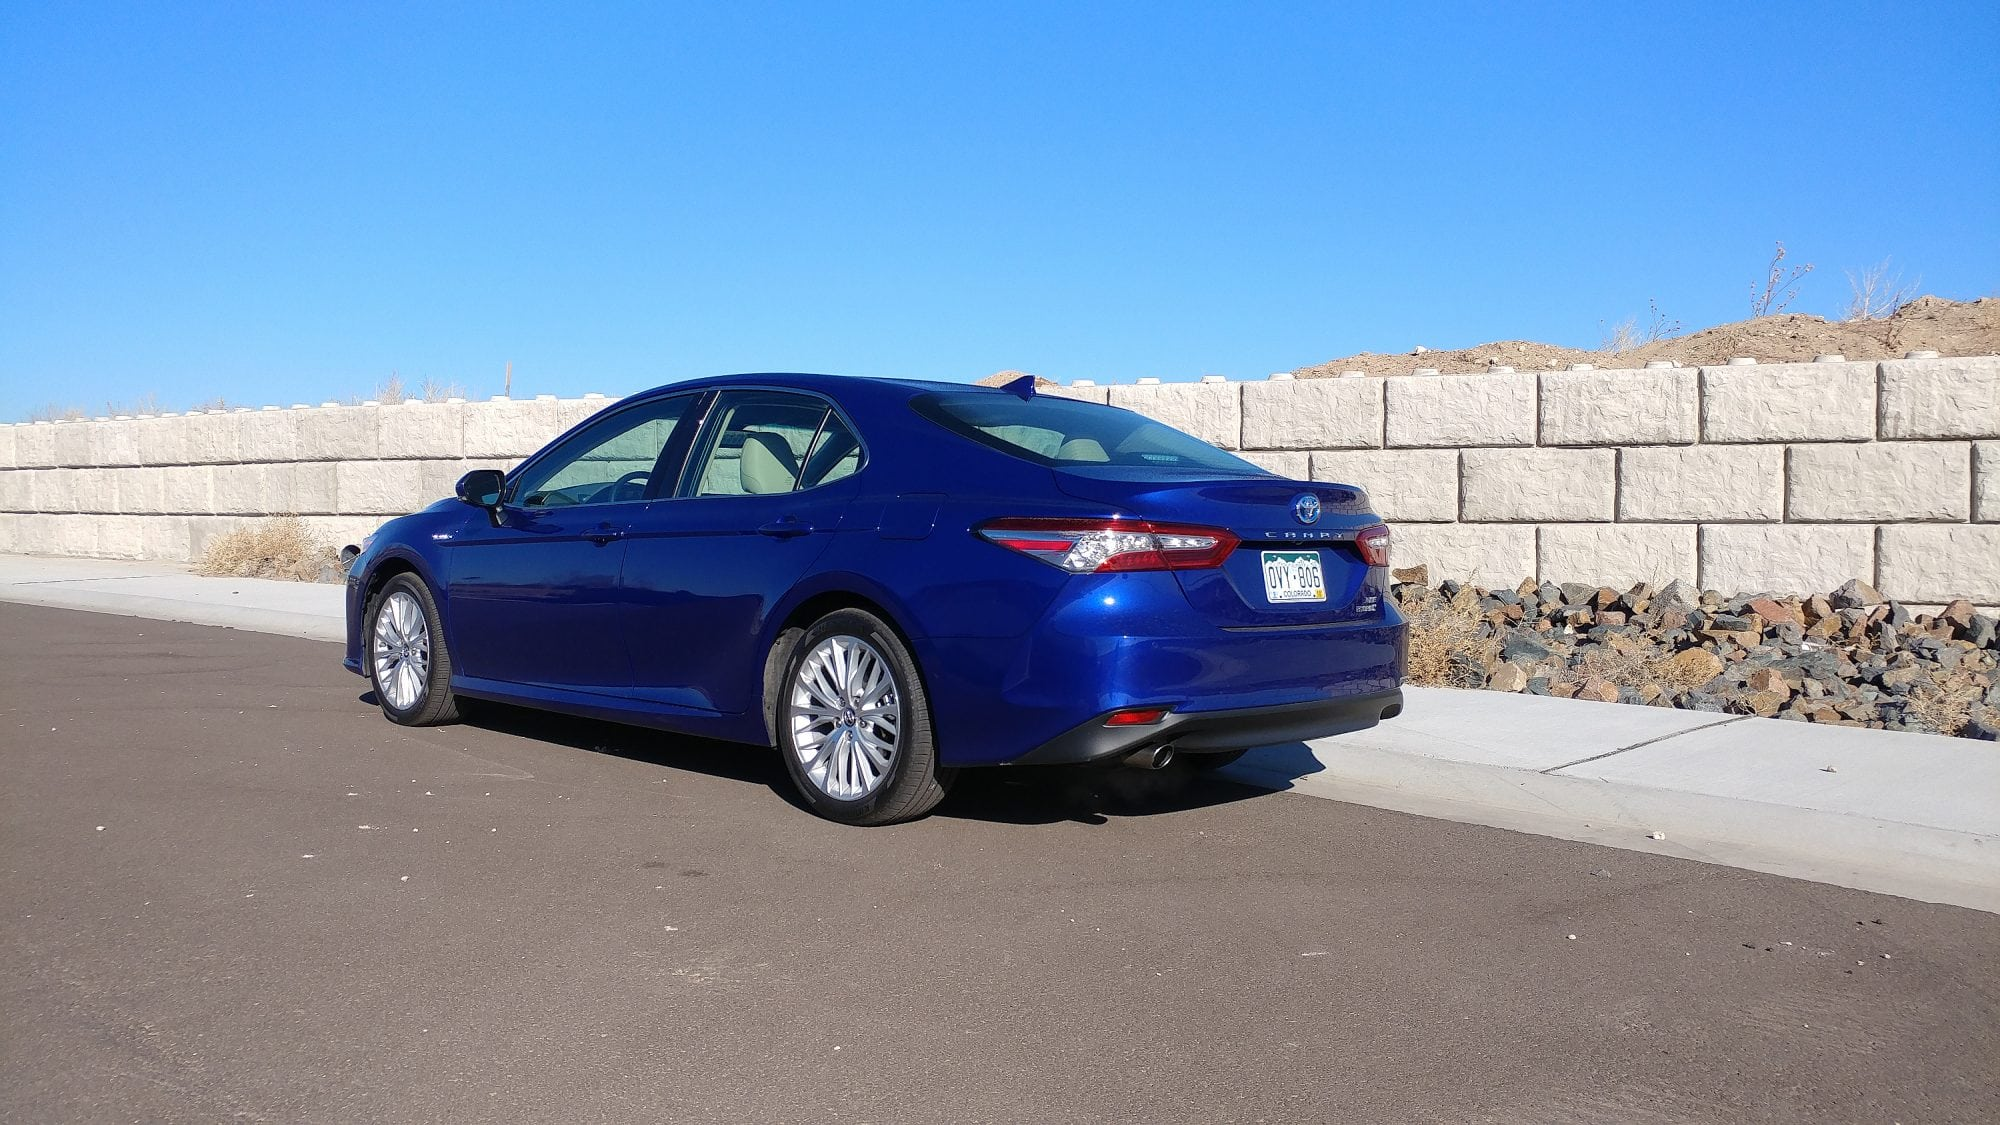 The 2018 Toyota Camry Hybrid Is Epa Rated At 52 Mpg Combined A Full 12 Higher Than Last Year That S Into Prius Territory Though We Note